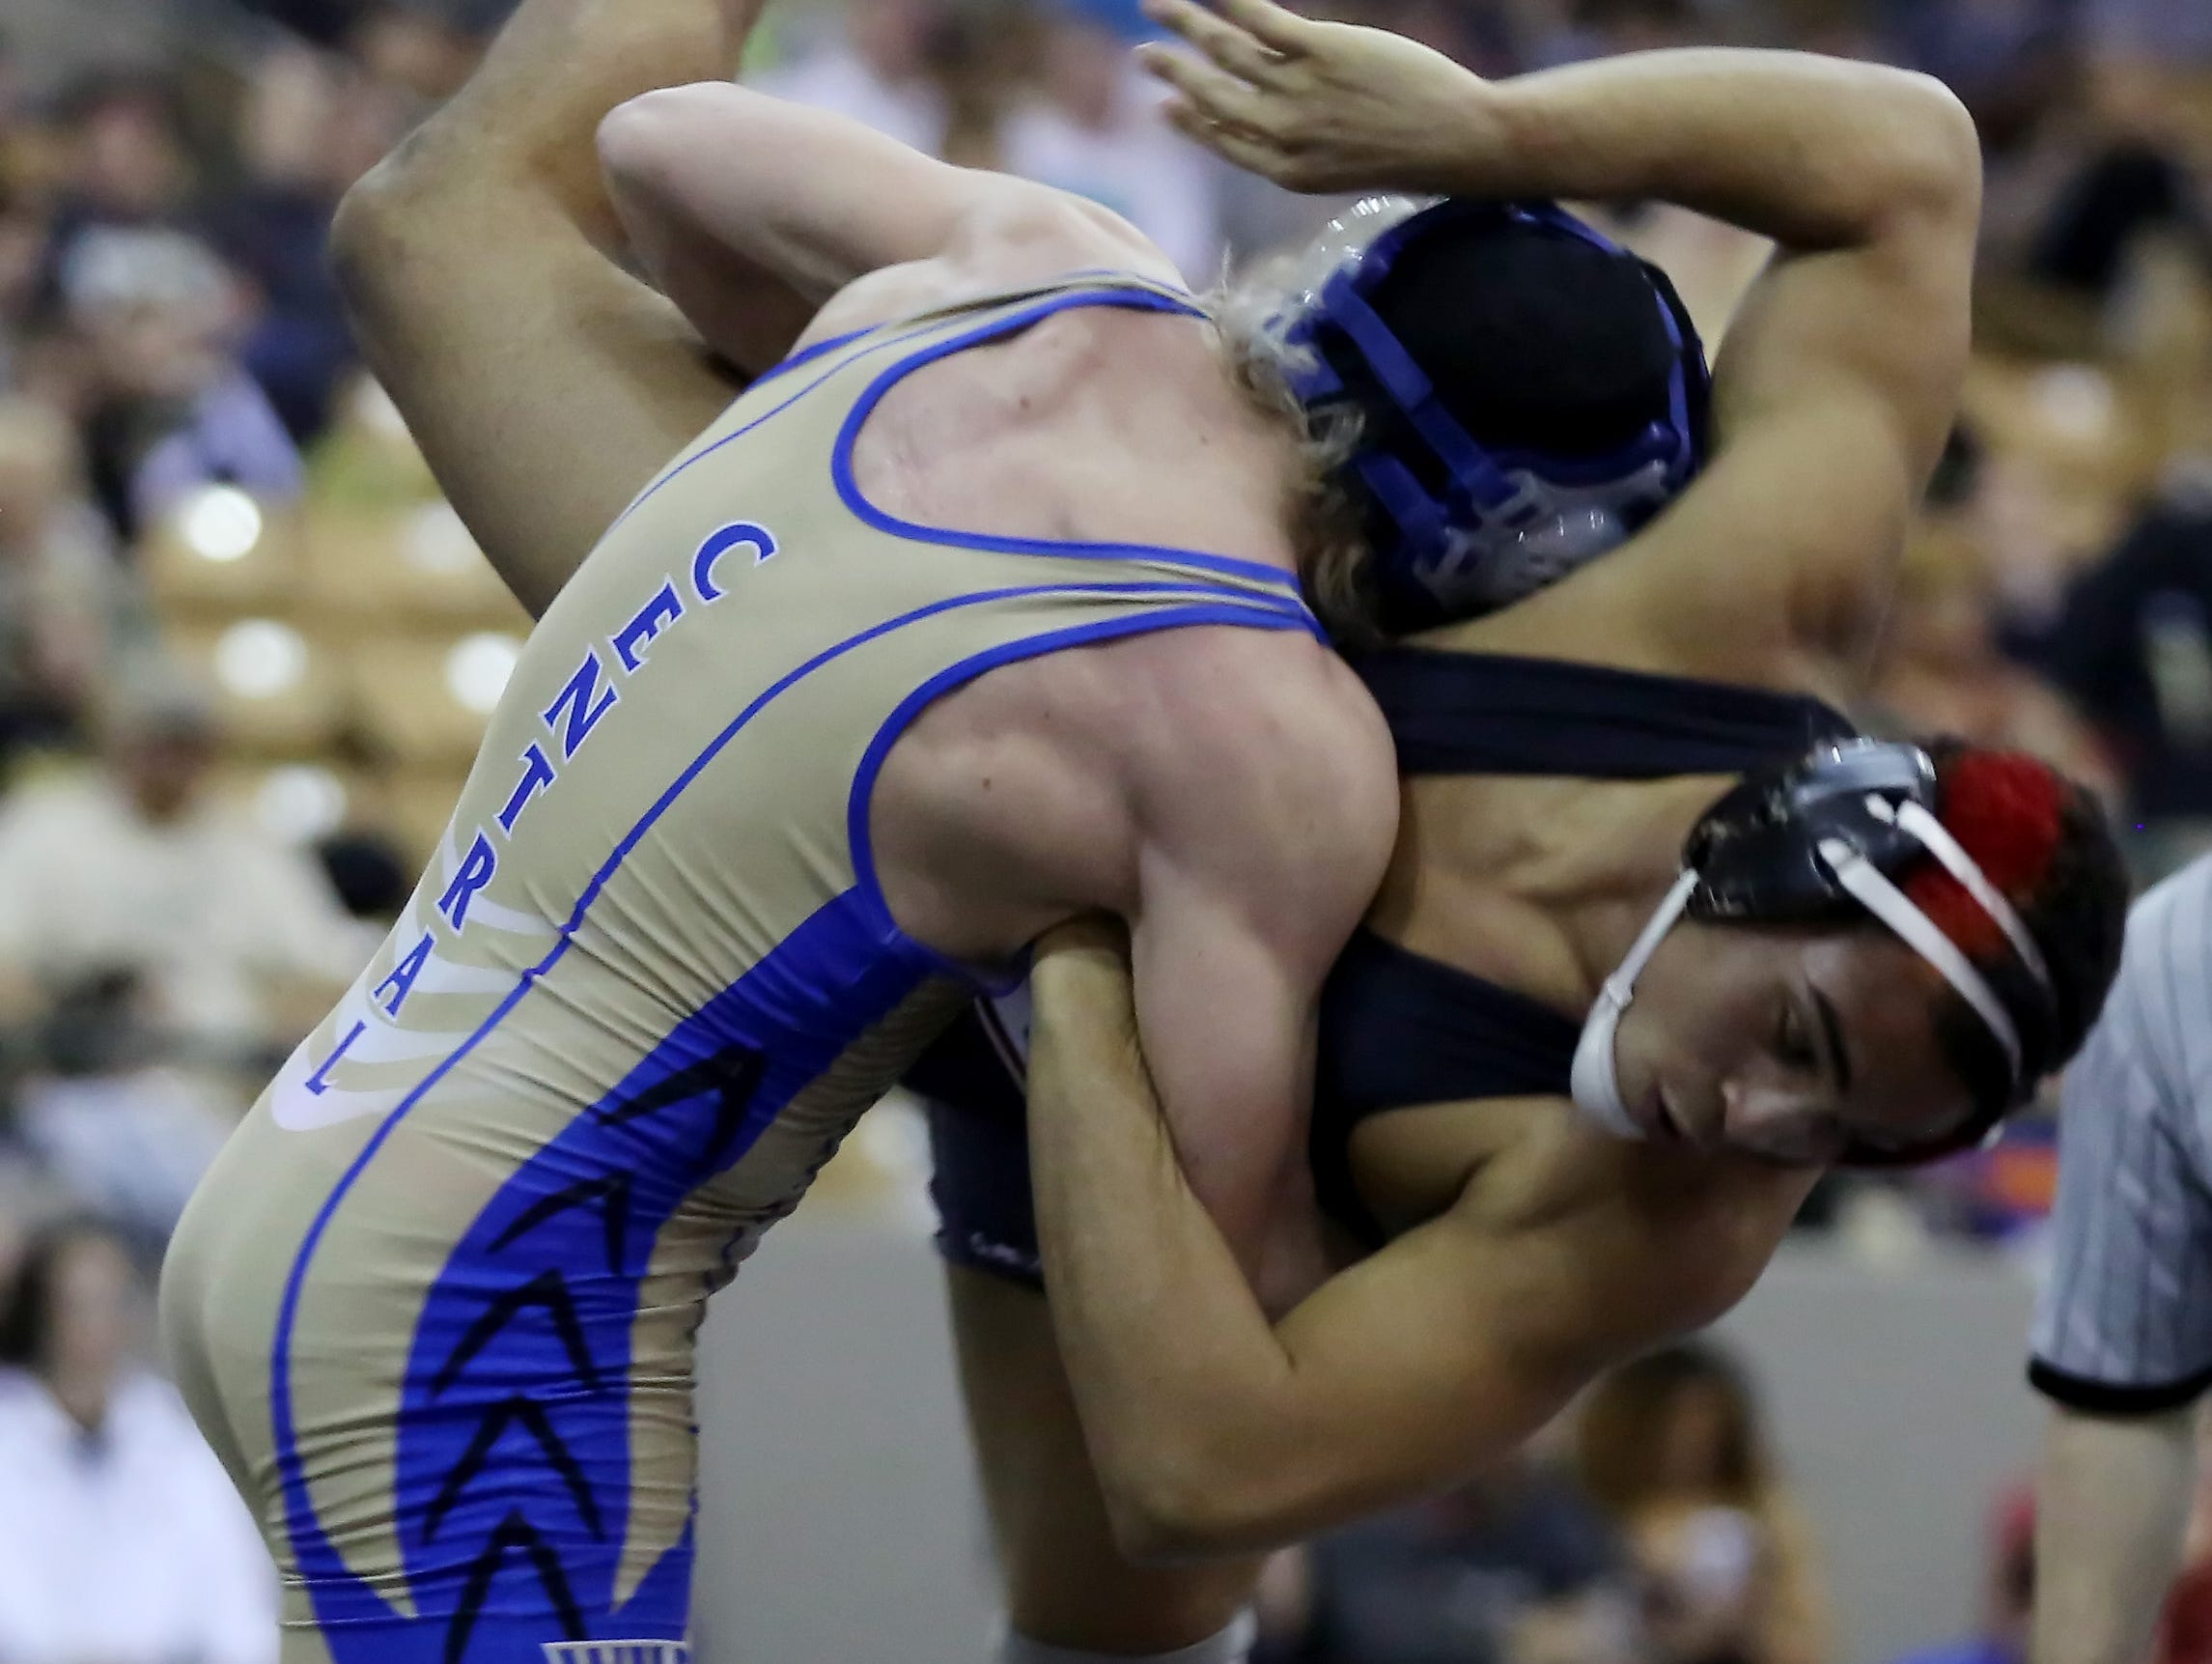 Wilson Central's Zach Linton, left, in blue and gold wrestles John Olivieri of Stewarts Creek, right, in black and red during the 170-pound semifinals at the TSSAA State Wrestling Tournament Friday.